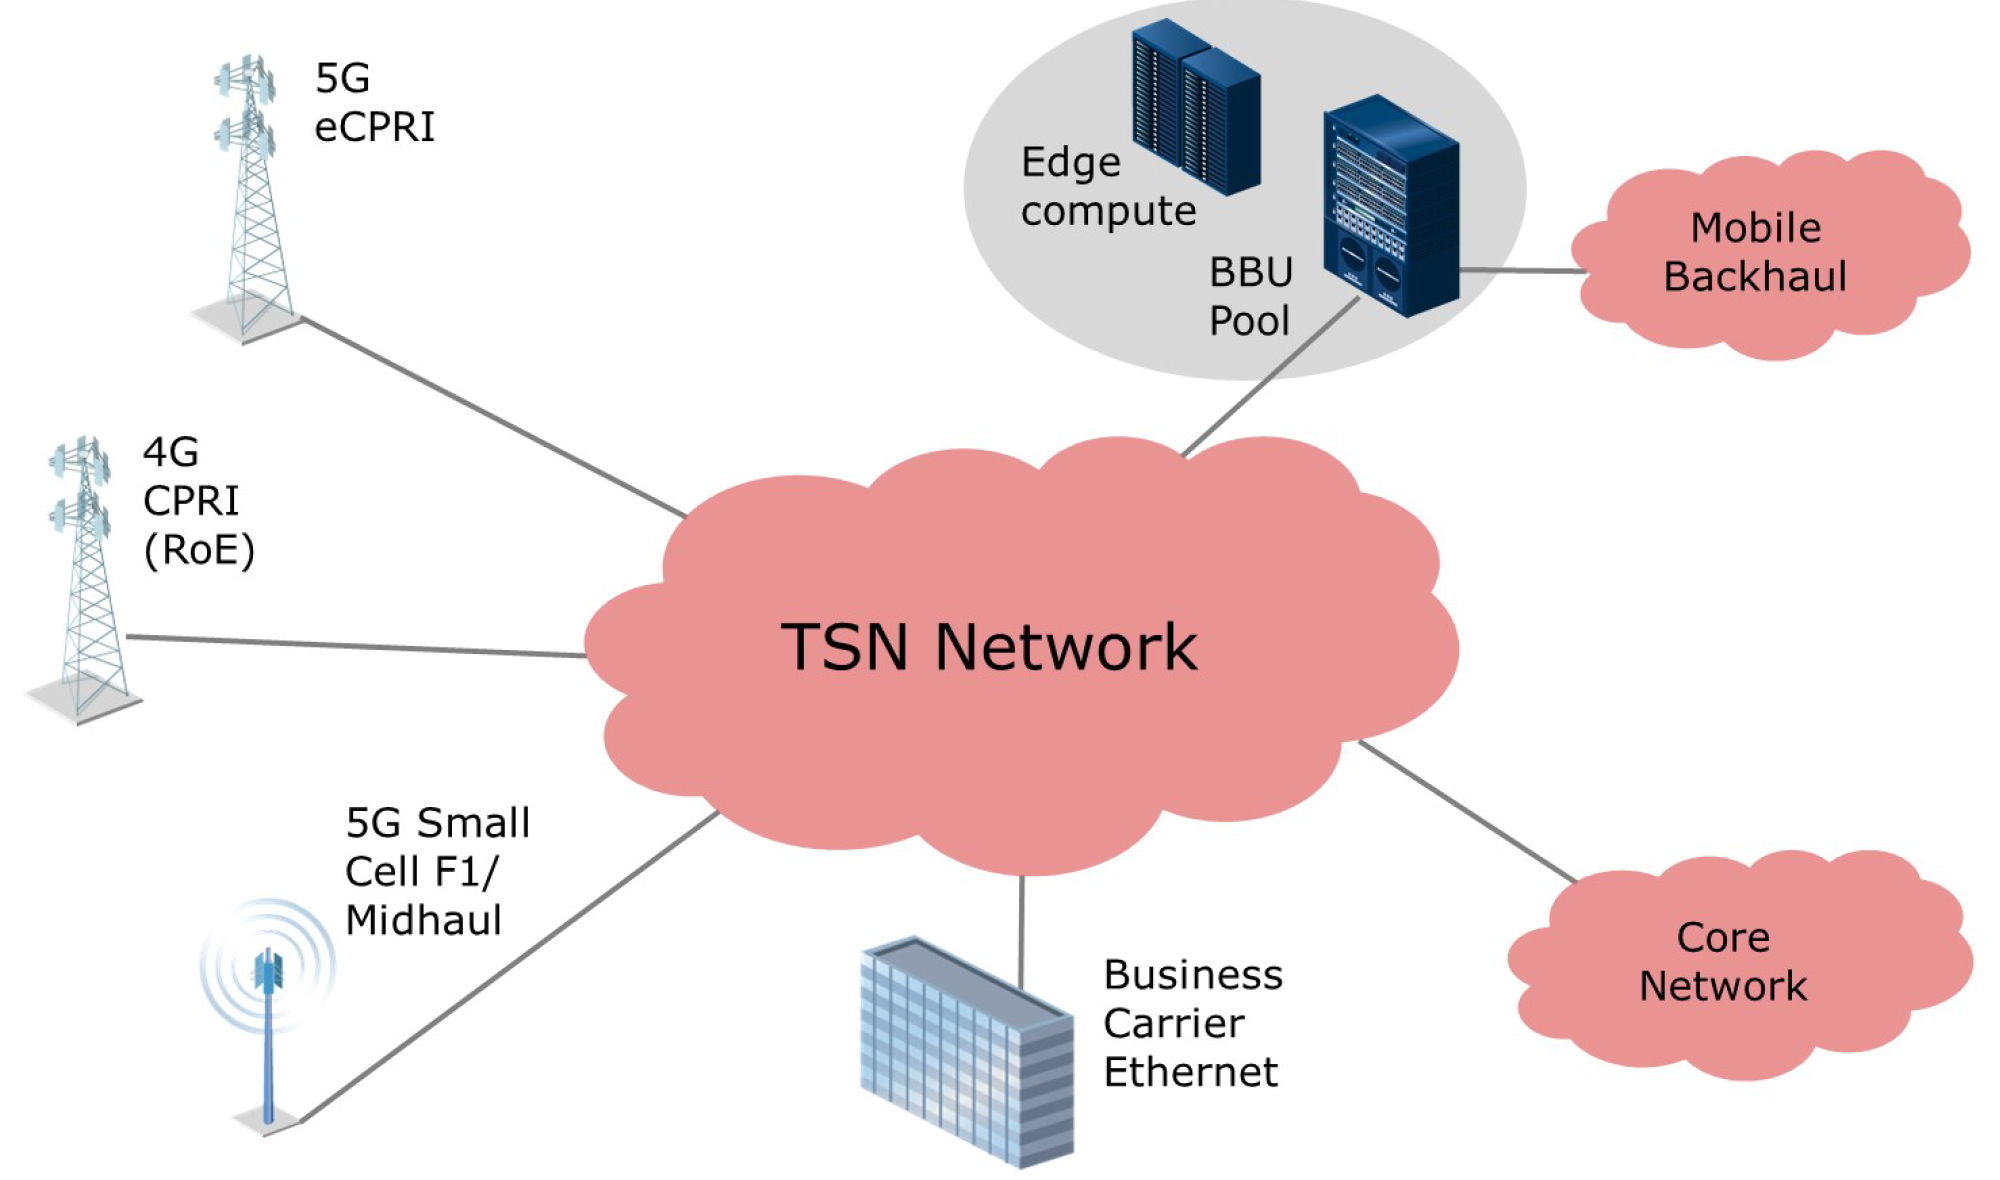 Figure 4: Converged Mobile Transport with TSN for Fronthaul. Source: Heavy Reading, 2020